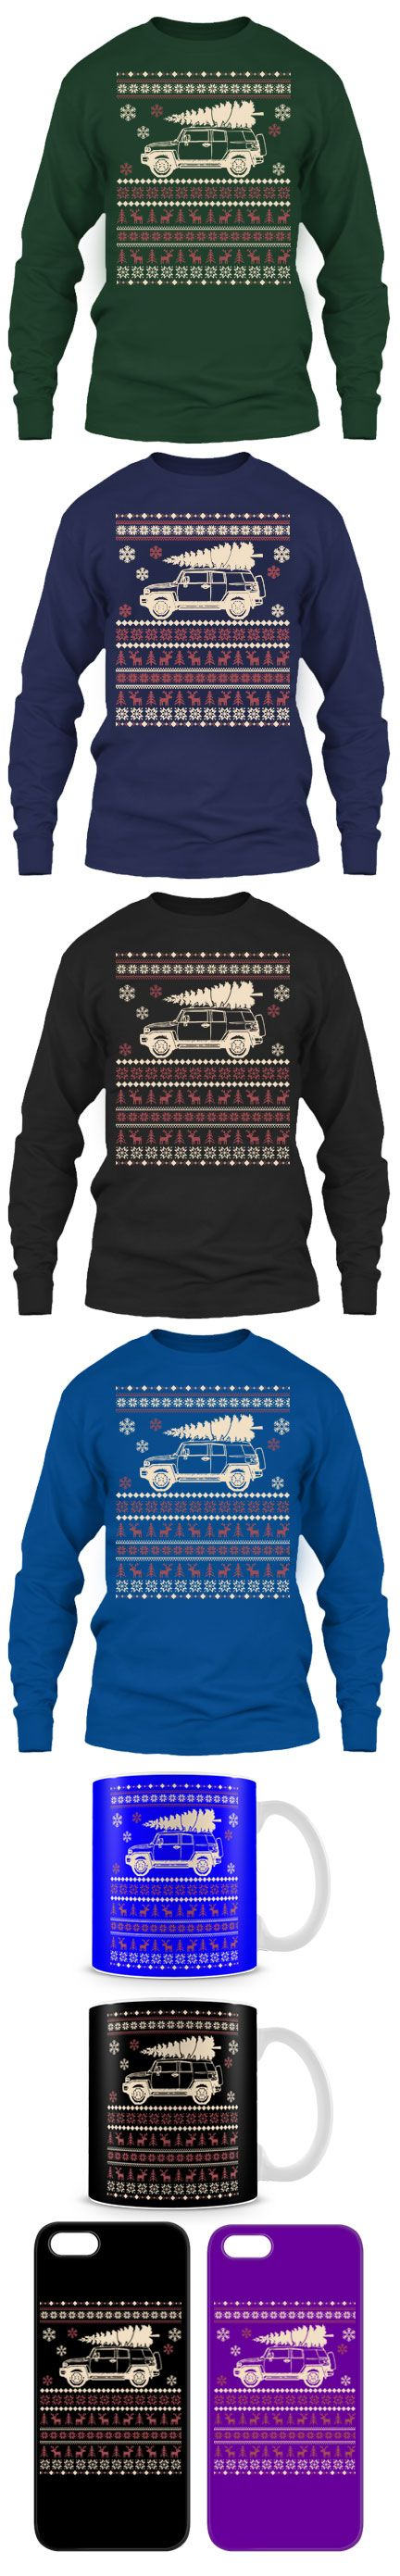 Toyota FJ Cruiser Ugly Christmas Sweater!  Then Click The Image To Buy It Now or Tag Someone You Want To Buy This For.